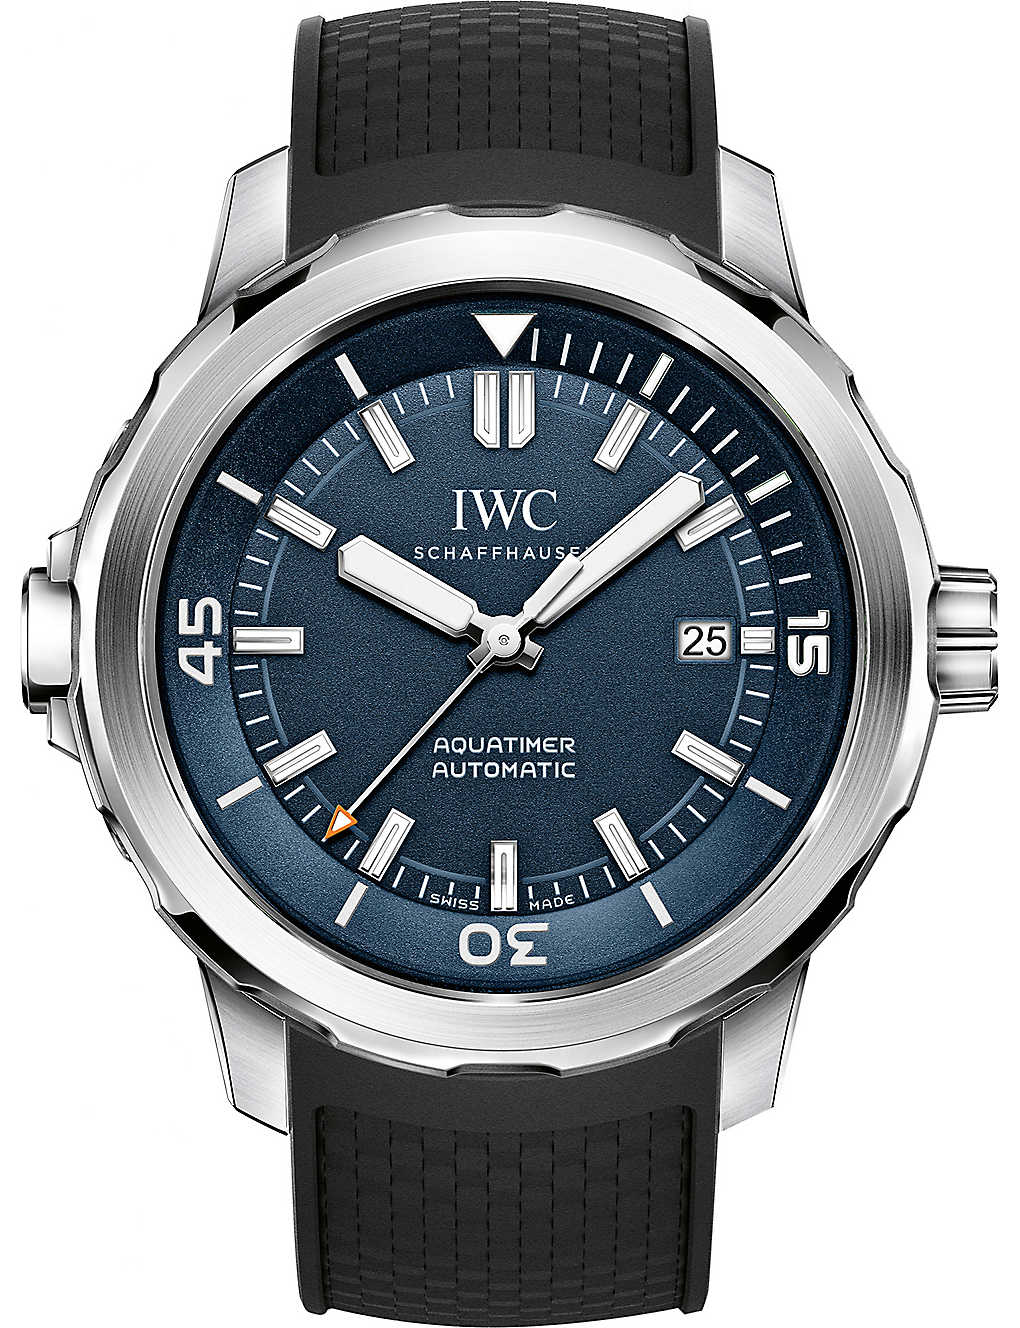 IWC SCHAFFHAUSEN: IW329005 Aquatimer Cousteau watch